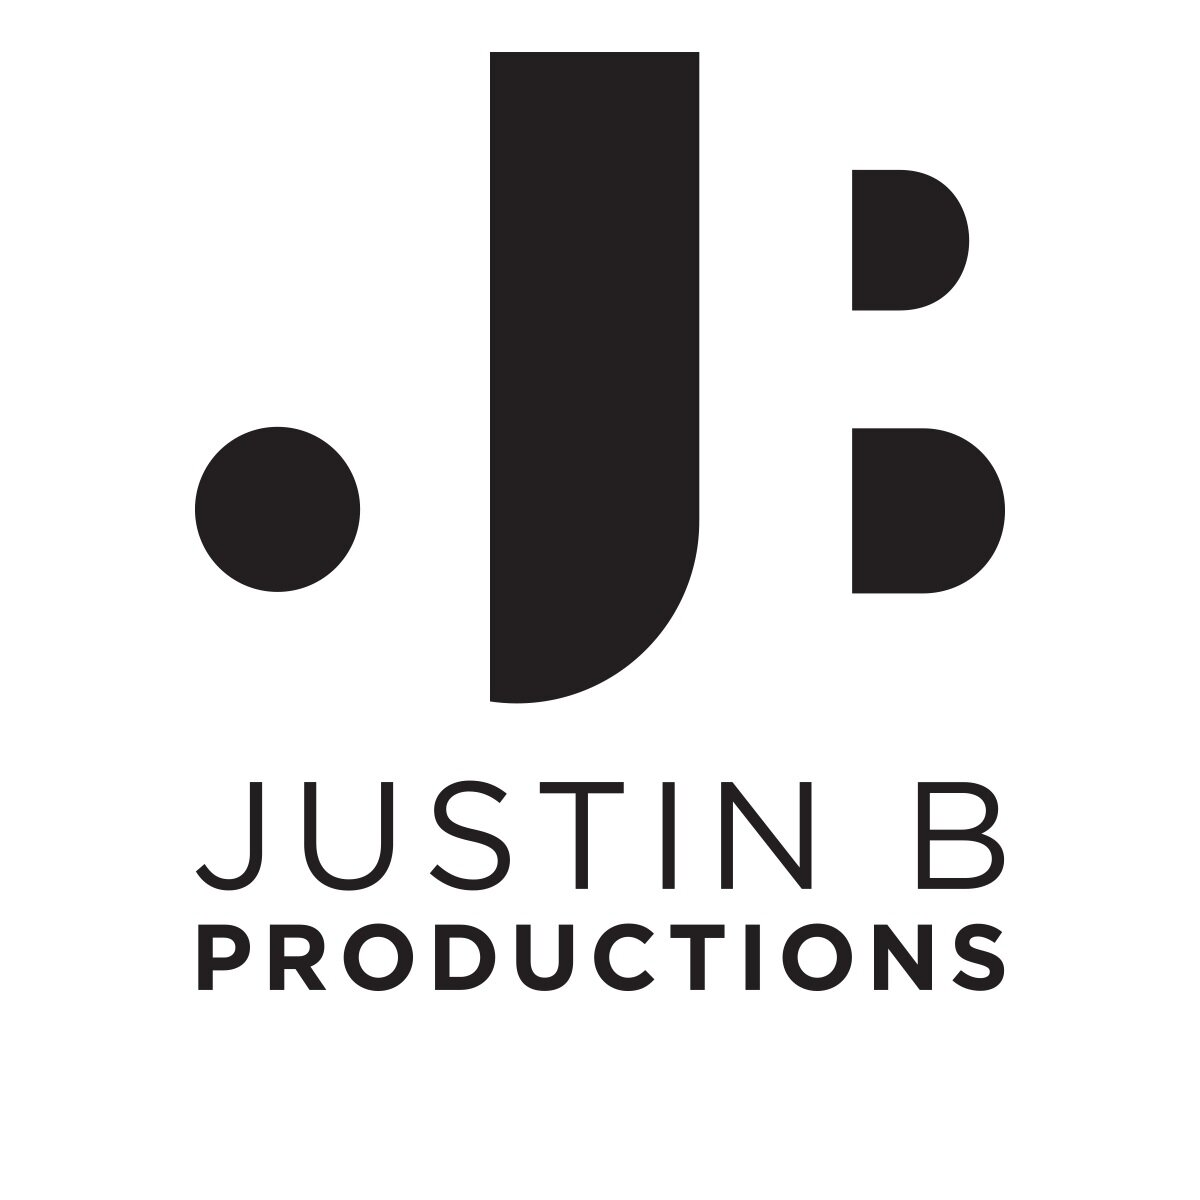 Justin B Productions